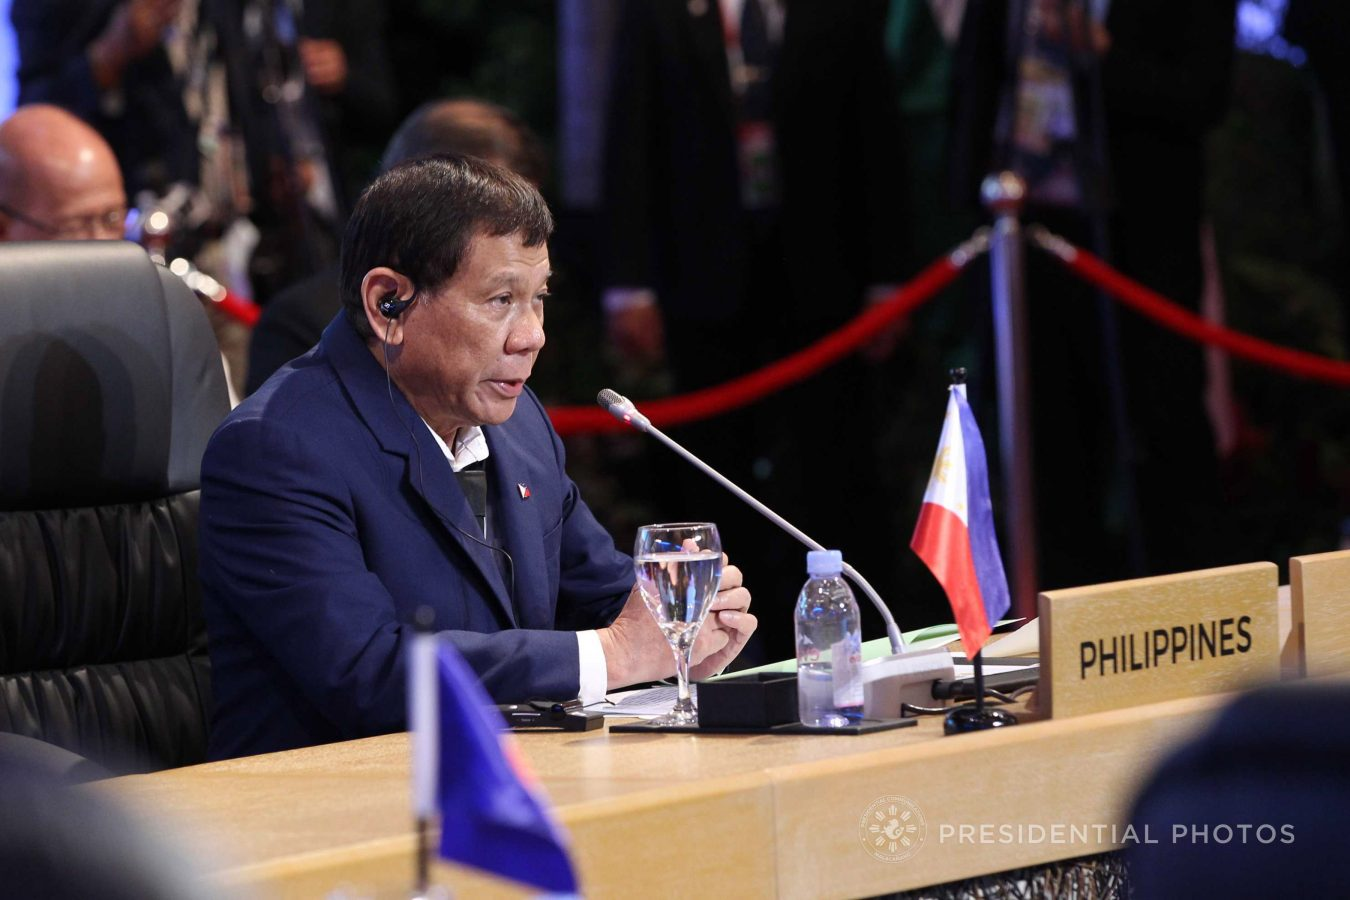 FILE: President Rodrigo Duterte has offered the People's Republic of China the privilege to operate the third telecommunications carrier in the country as a means to end the existing duopoly in the vital industry, Malacañang said Monday. (PCOO PHOTO)